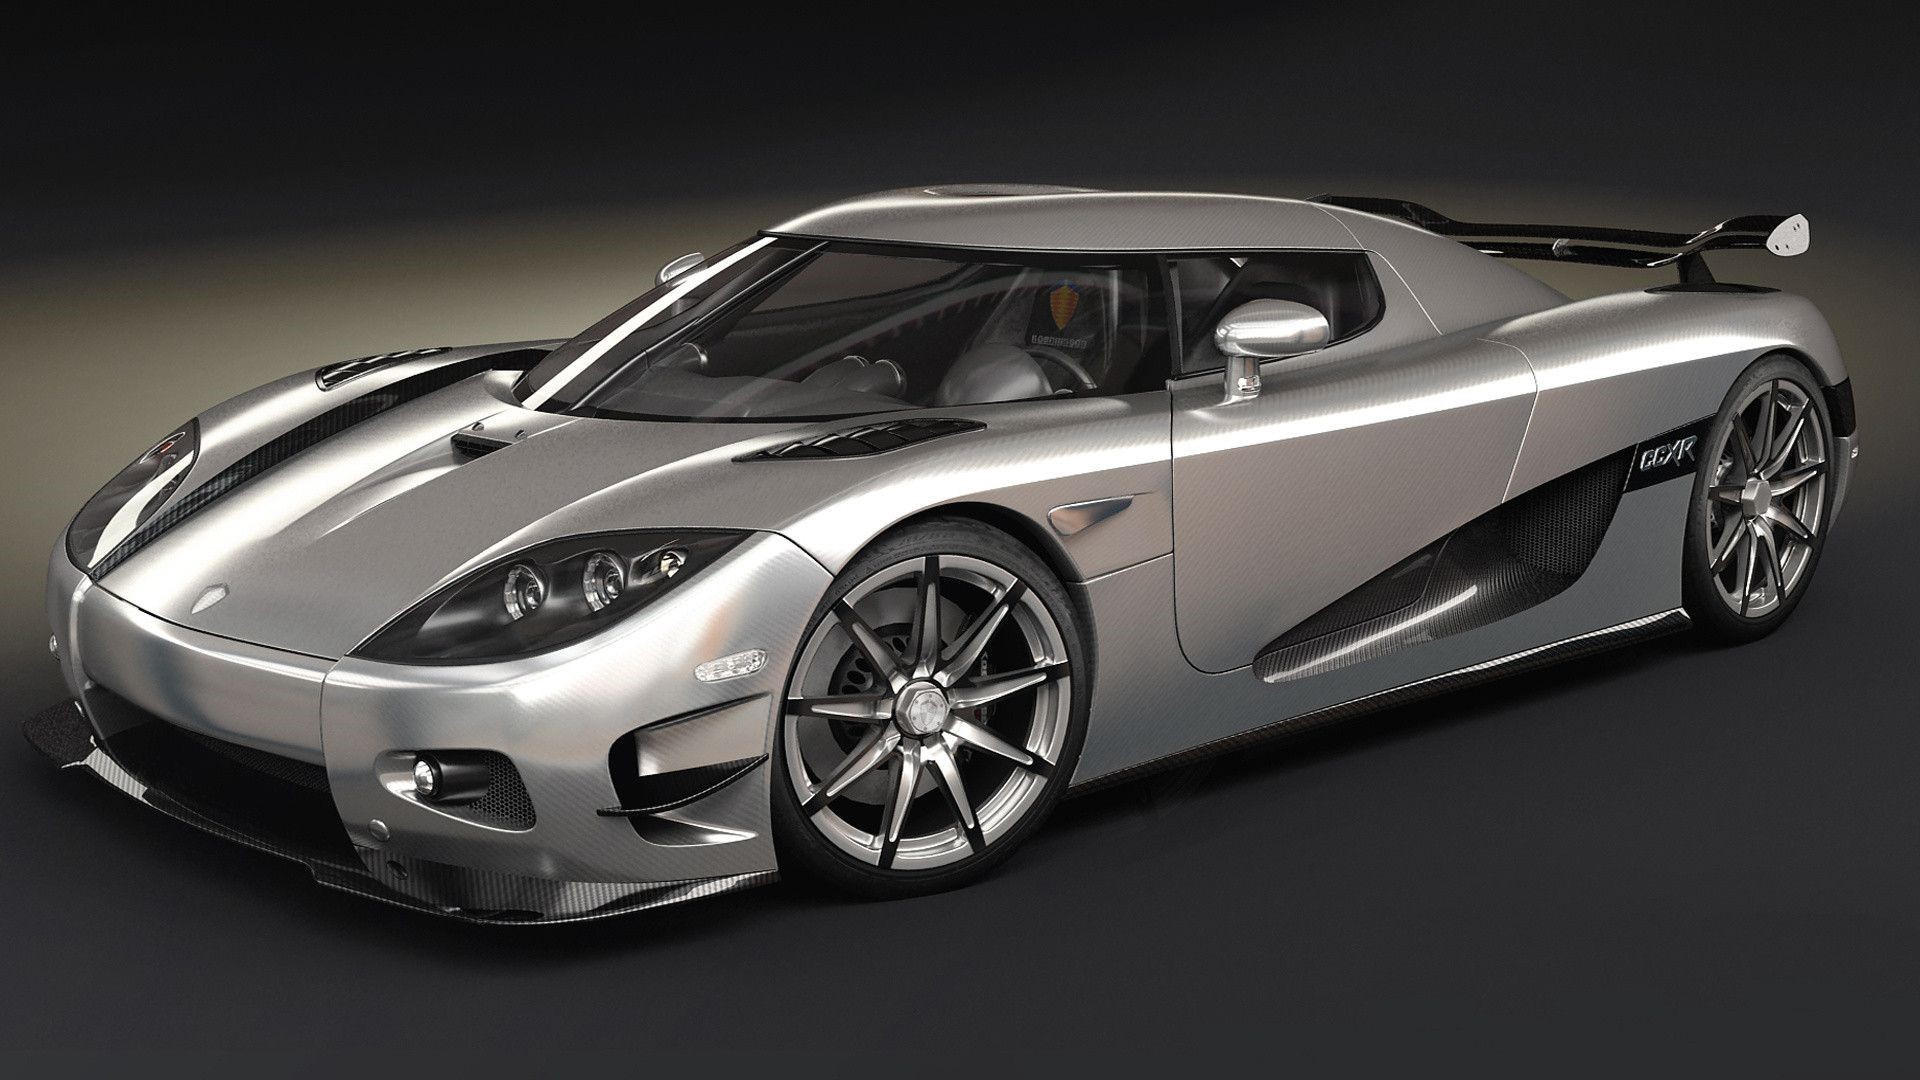 Koenigsegg CCXR Edition HTC Wallpapers